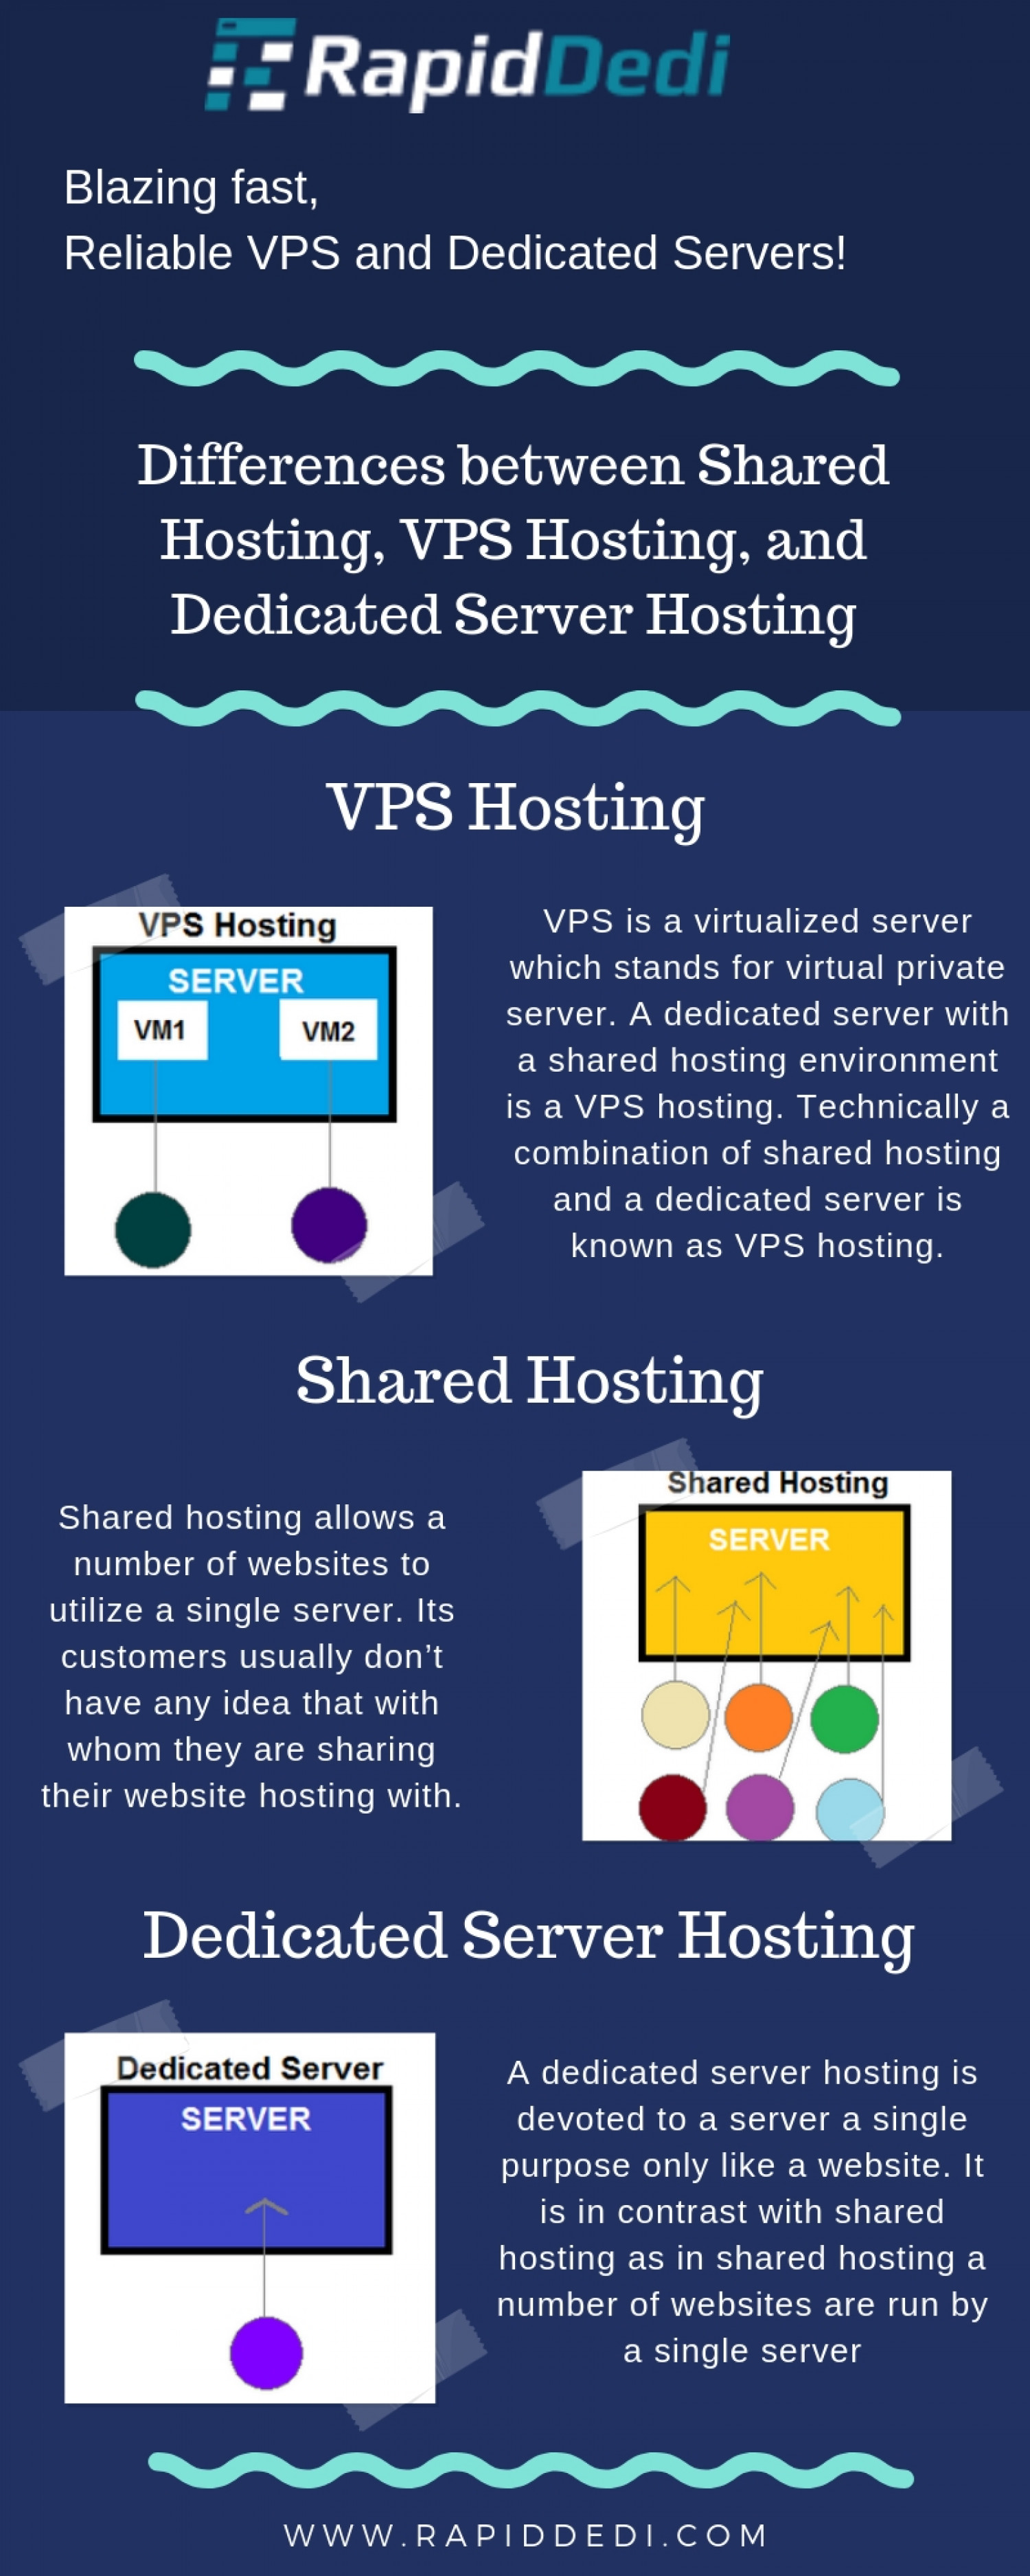 Differences between Shared Hosting, VPS Hosting, and Dedicated Server Hosting Infographic